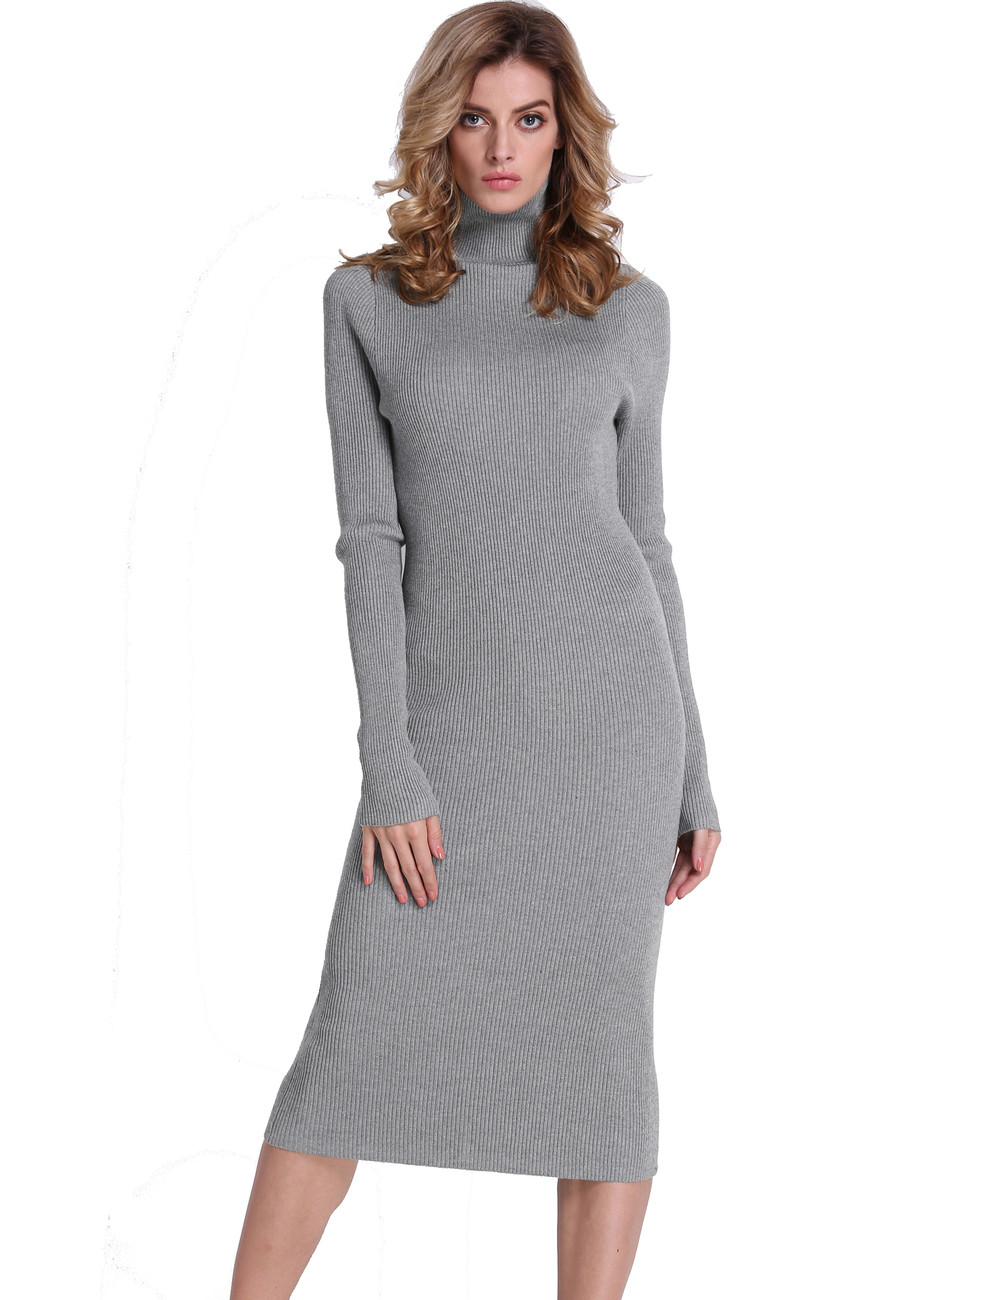 8447beefdad Ribbed Turtleneck Midi Length Sweater Dress Light Gray - PrettyGuide